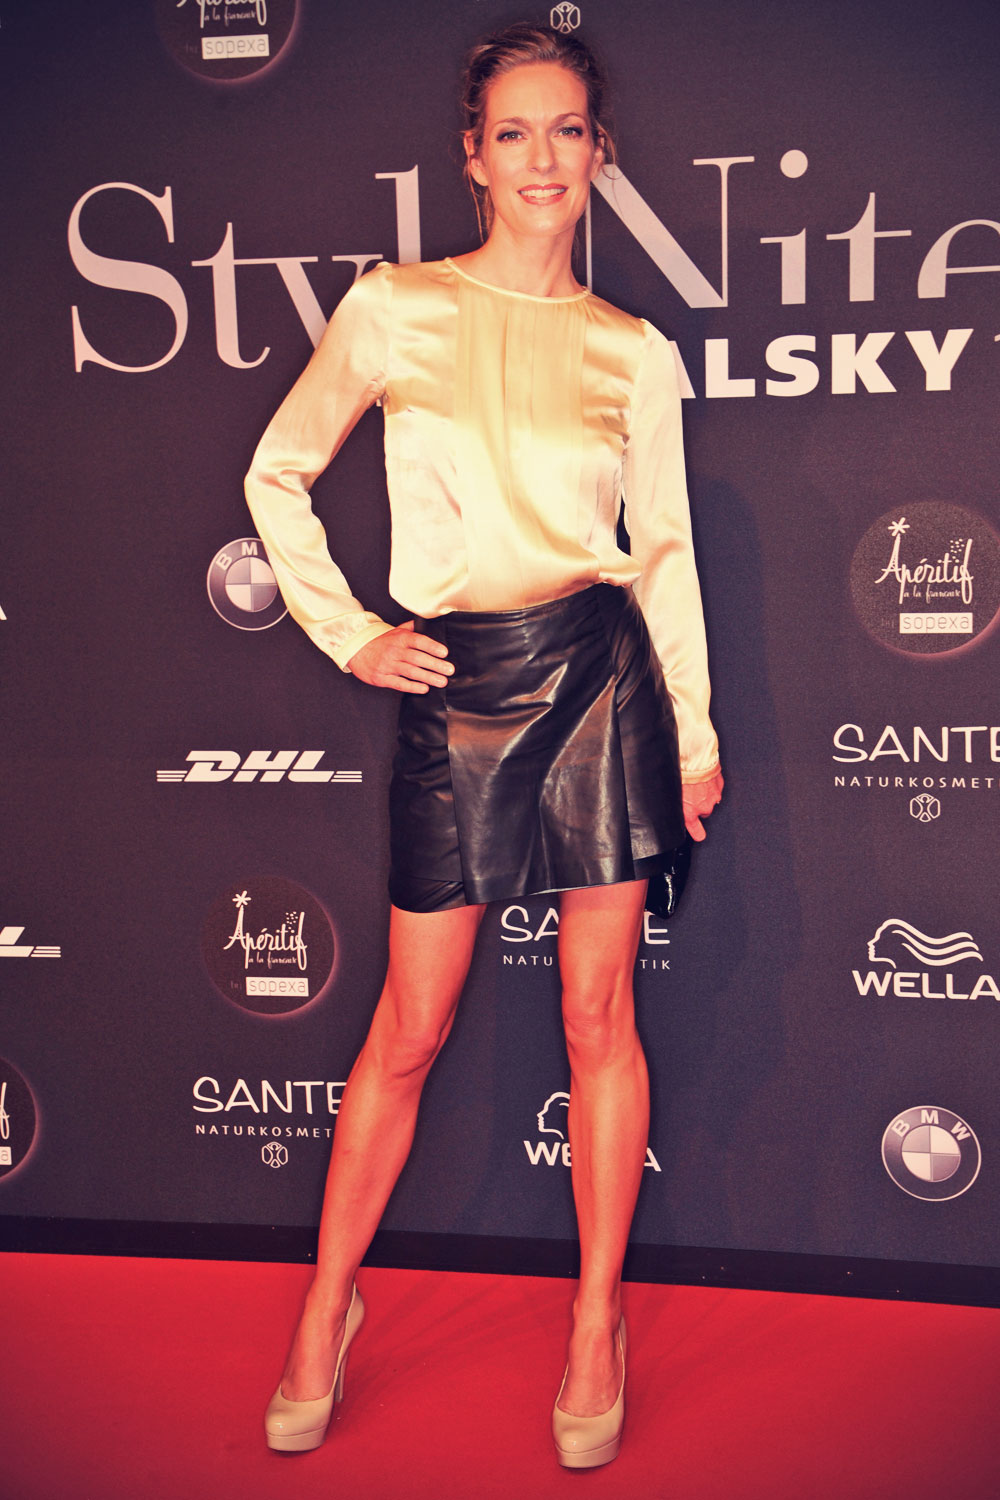 Lisa Martinek attends the Michalsky Stylenite 2014